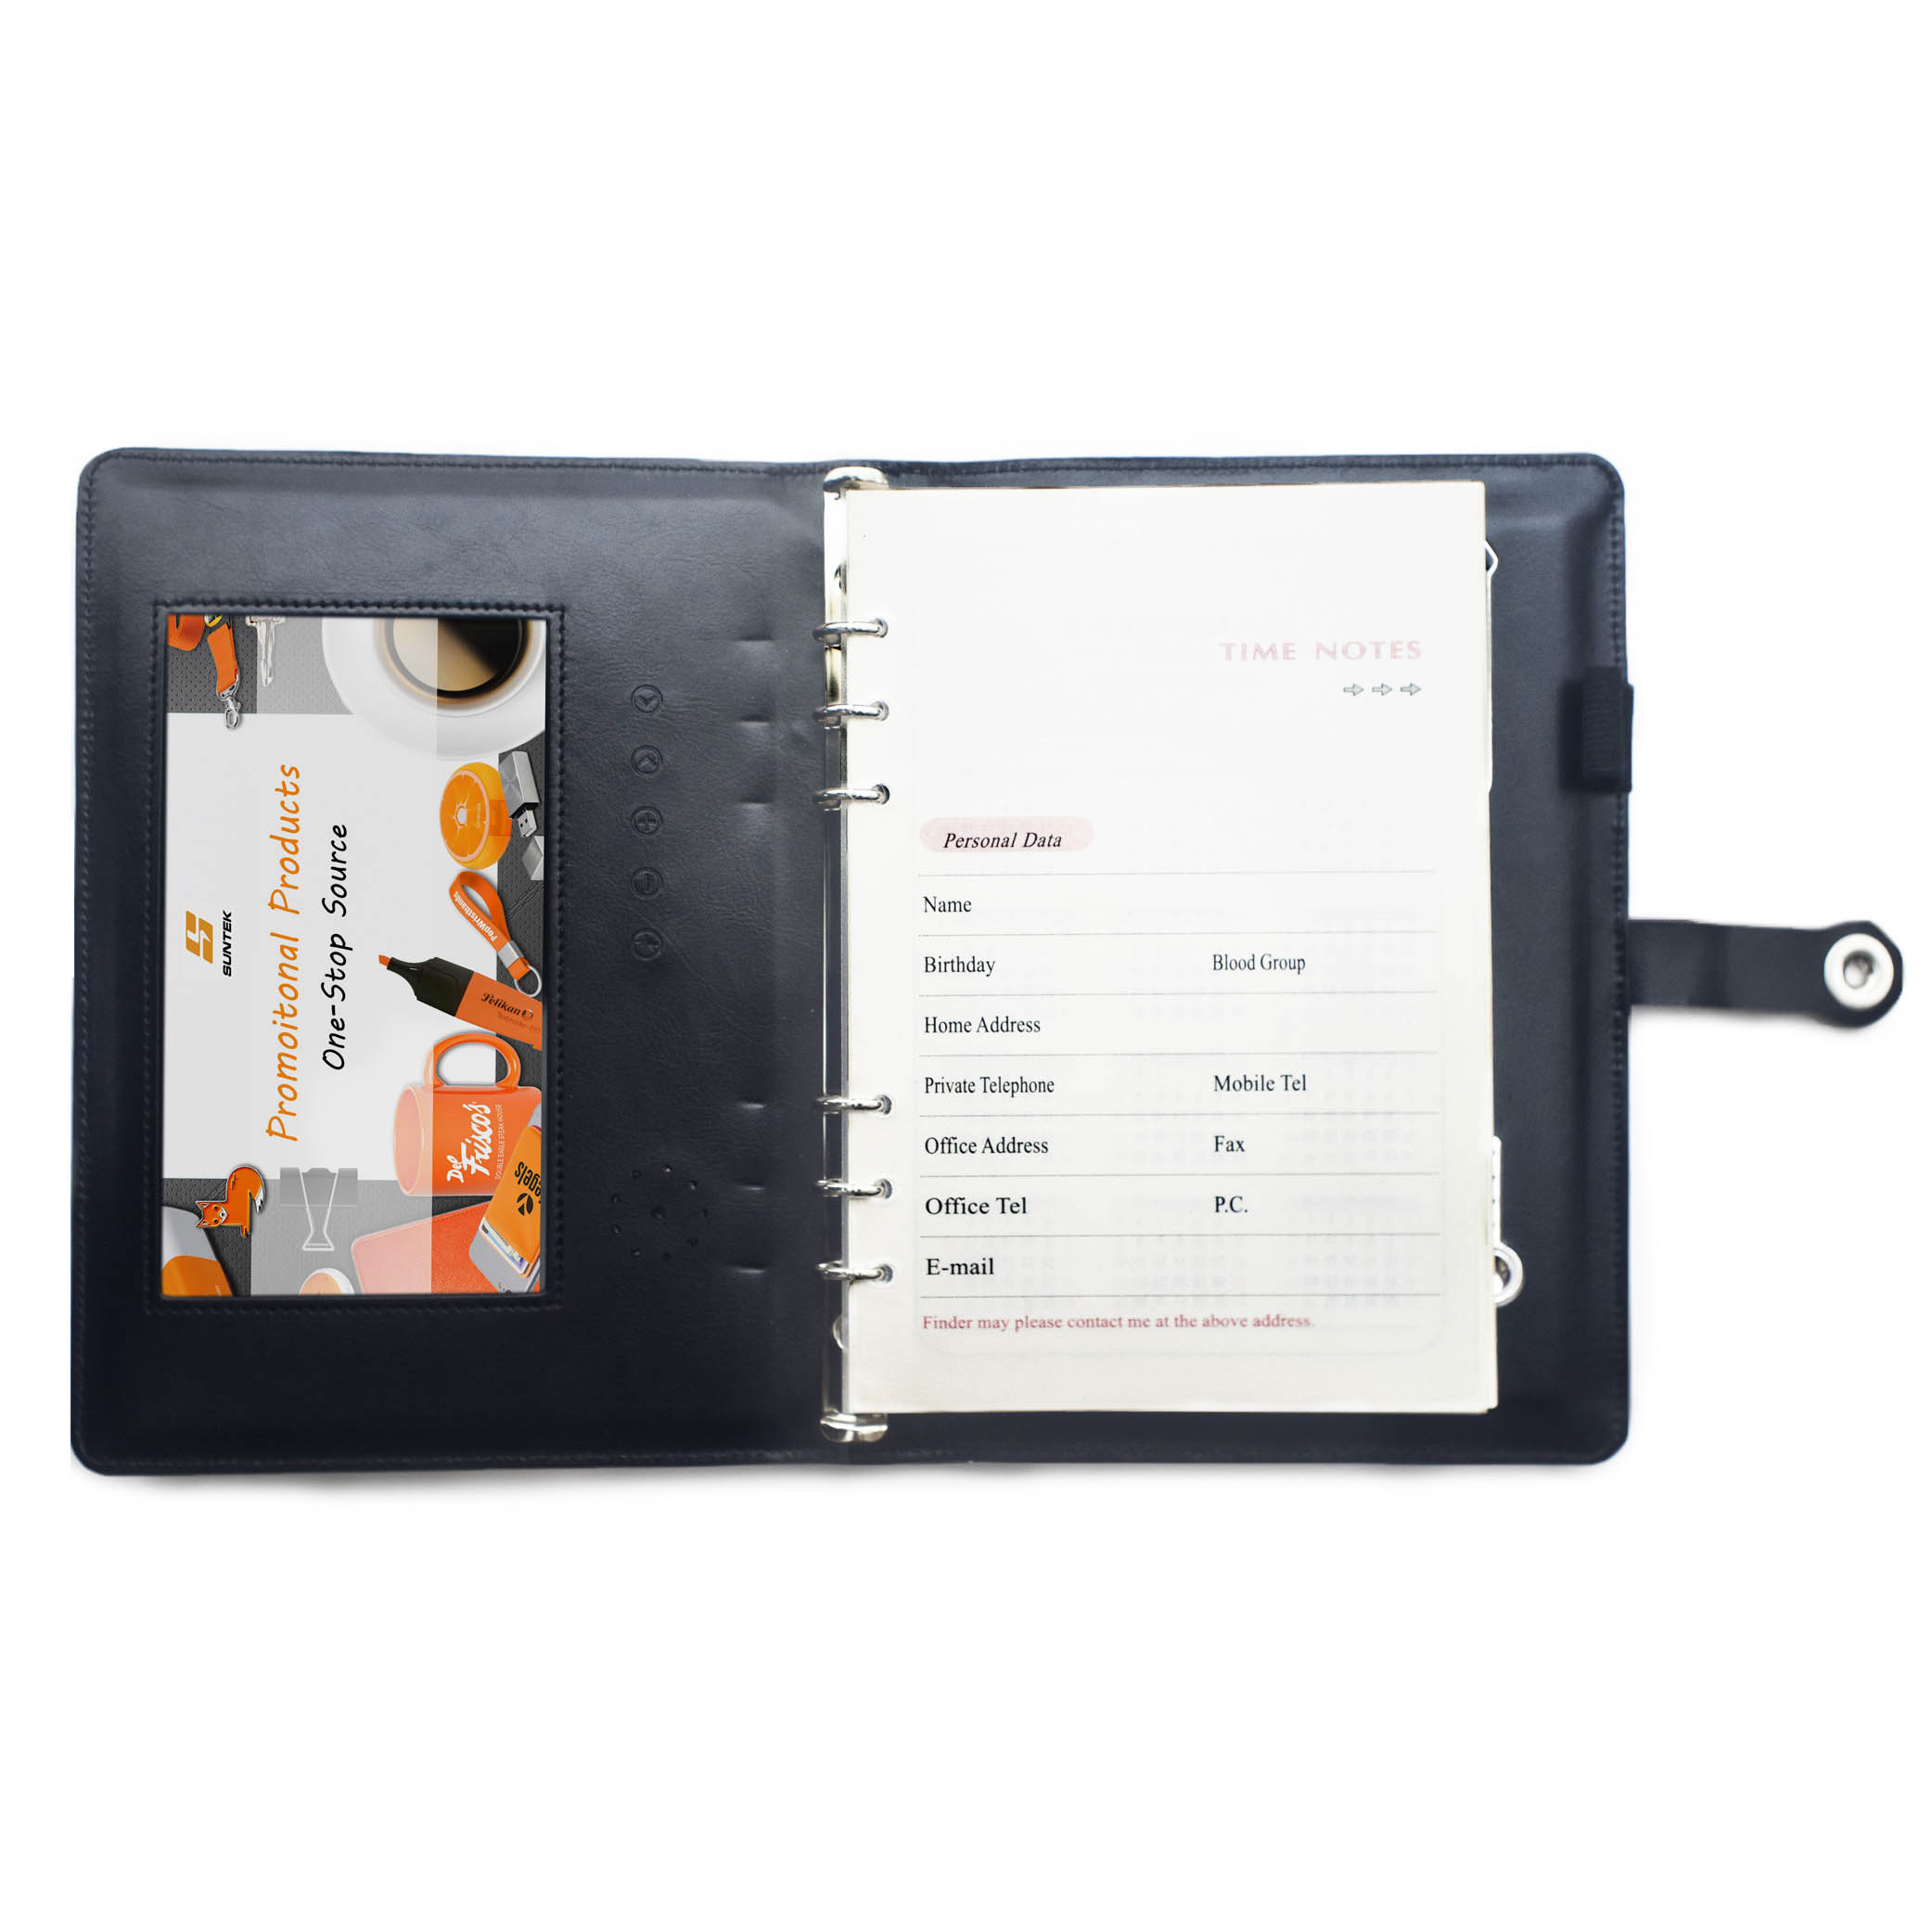 Video Screen Notebook w/ Power Bank & USB Flash Drive